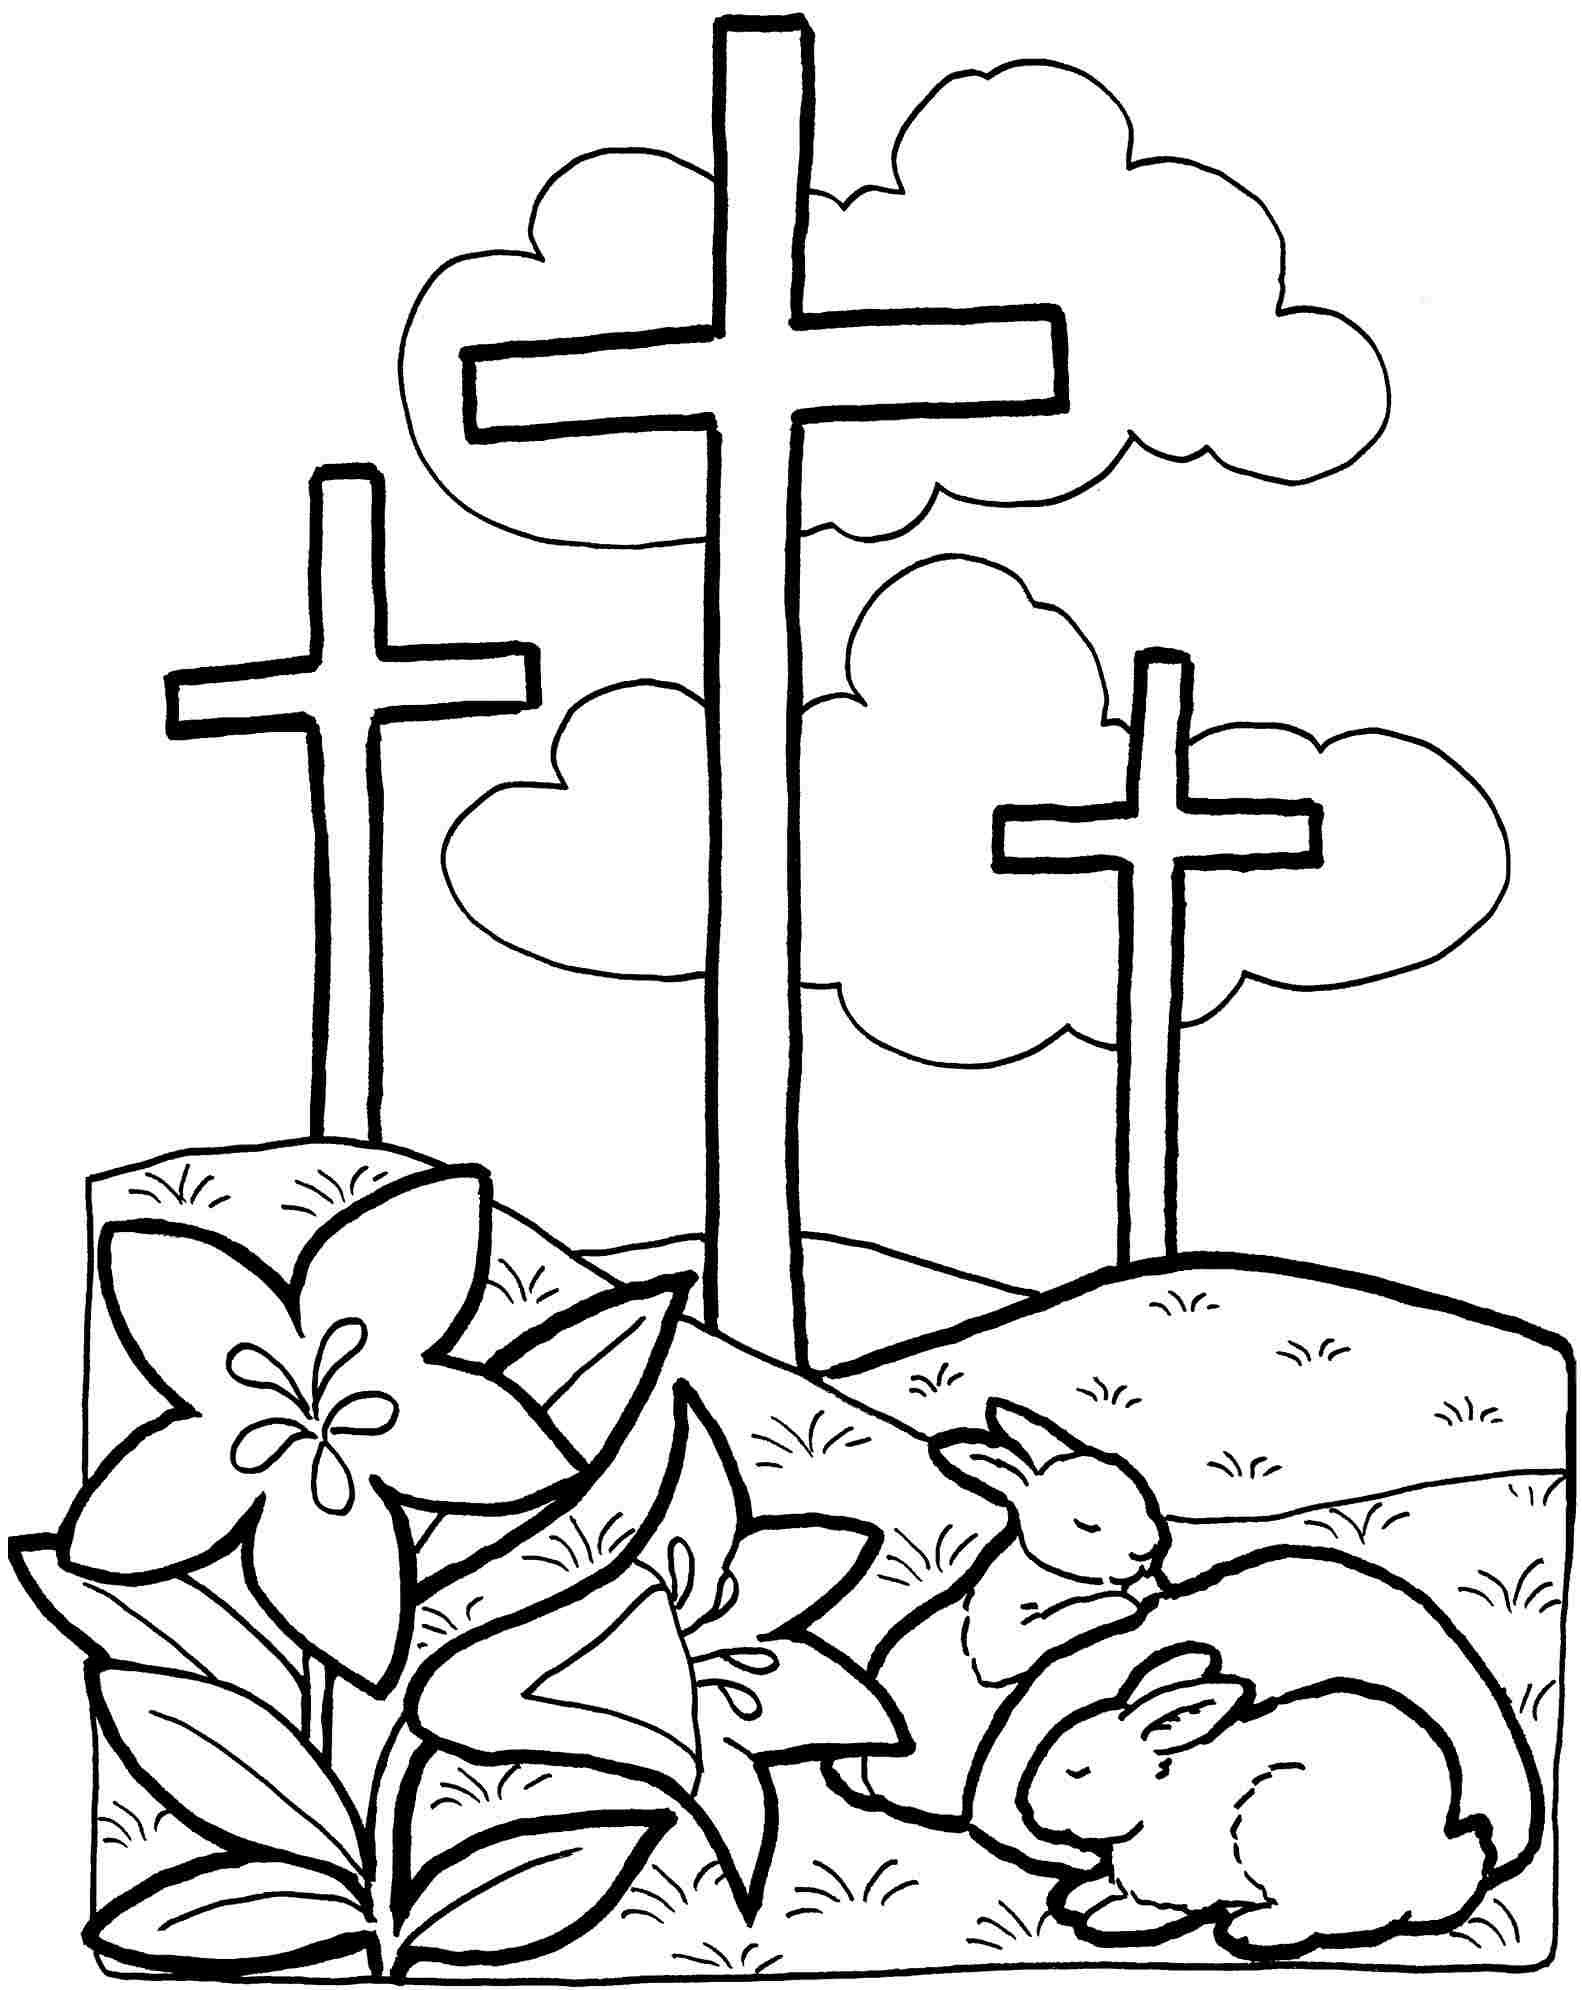 Christian Coloring Page Christian Coloring Pages Free Christian Coloring Pages